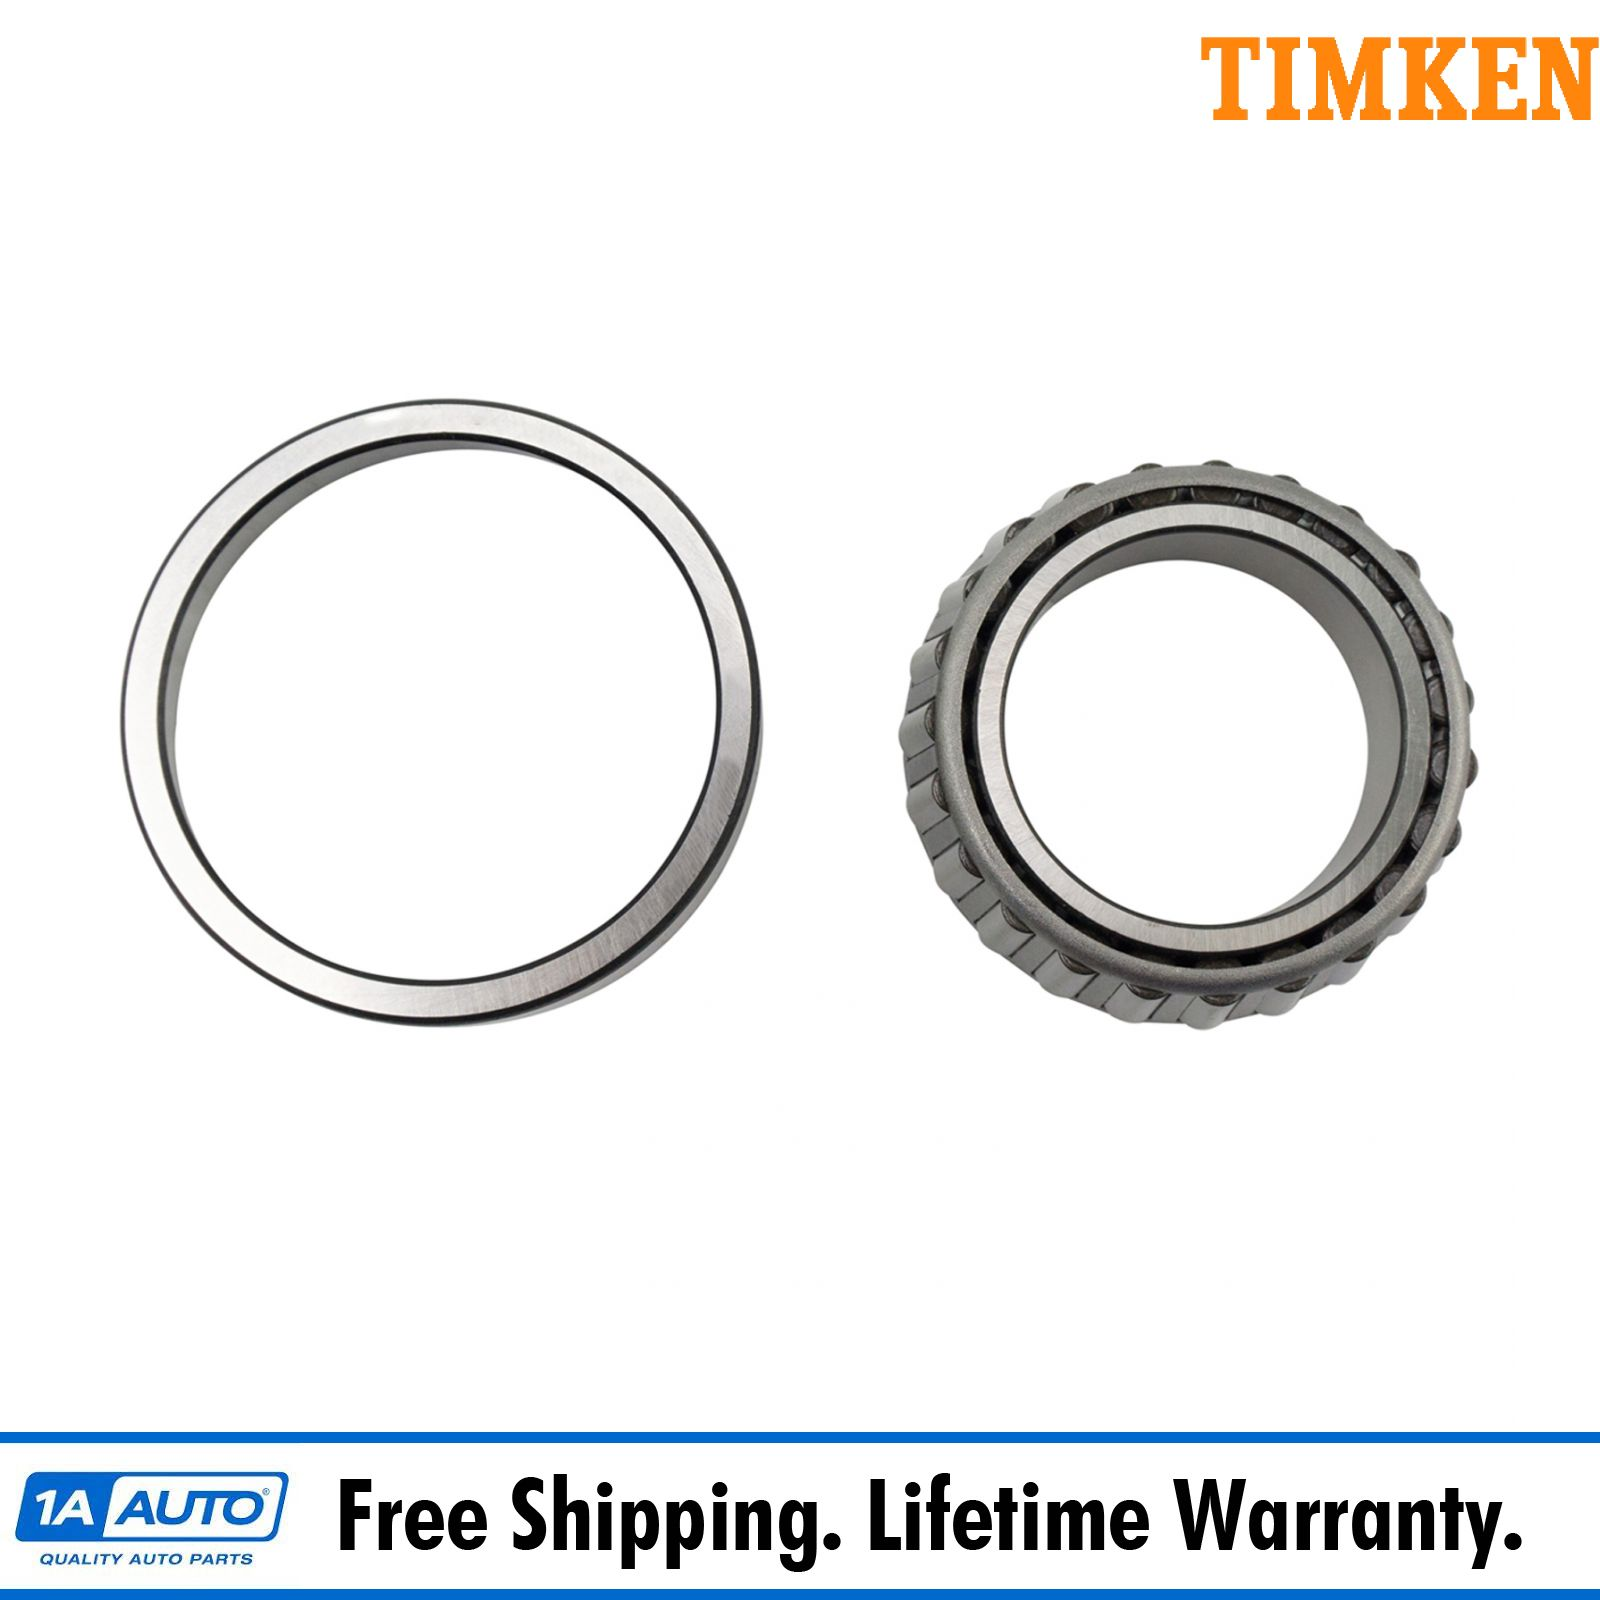 Note: Dual Rear Wheels 4WD, RWD - Two Bearings Included with Two Years Warranty 2009 fits GMC Sierra 3500 HD Front Wheel Bearing and Hub Assembly Left and Right